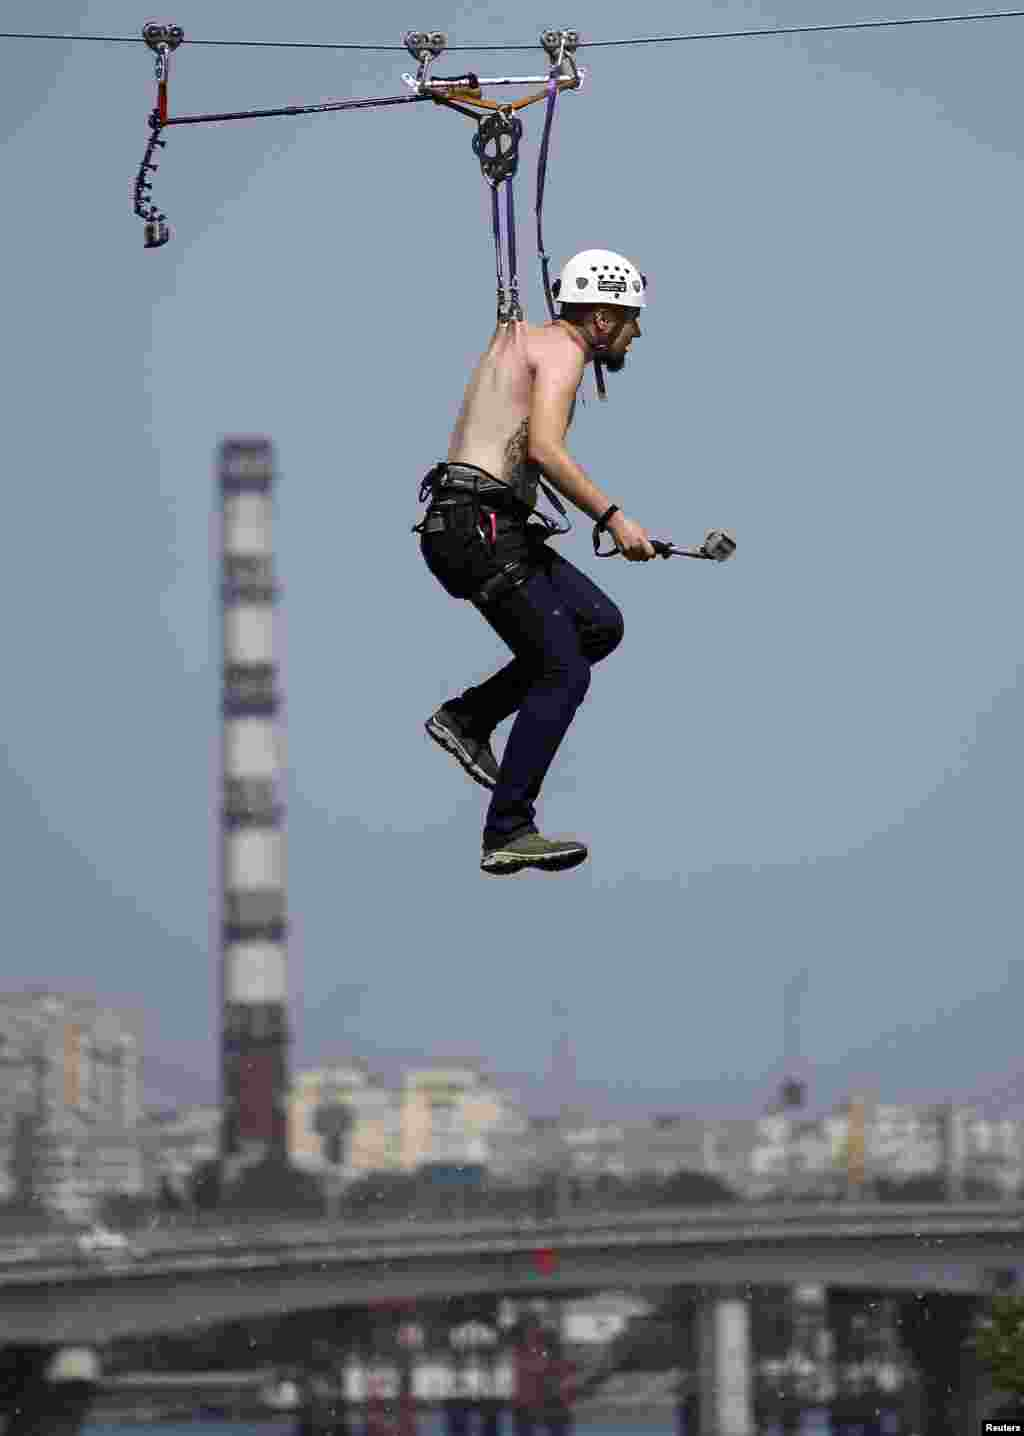 Pavlo Klets, 24, rides a Tyrolean traverse over the Dnipro River, suspended by a cable wire with metal clamps pierced directly into the skin of his back to set a national record for the longest distance travelled on a Tyrolean traverse.